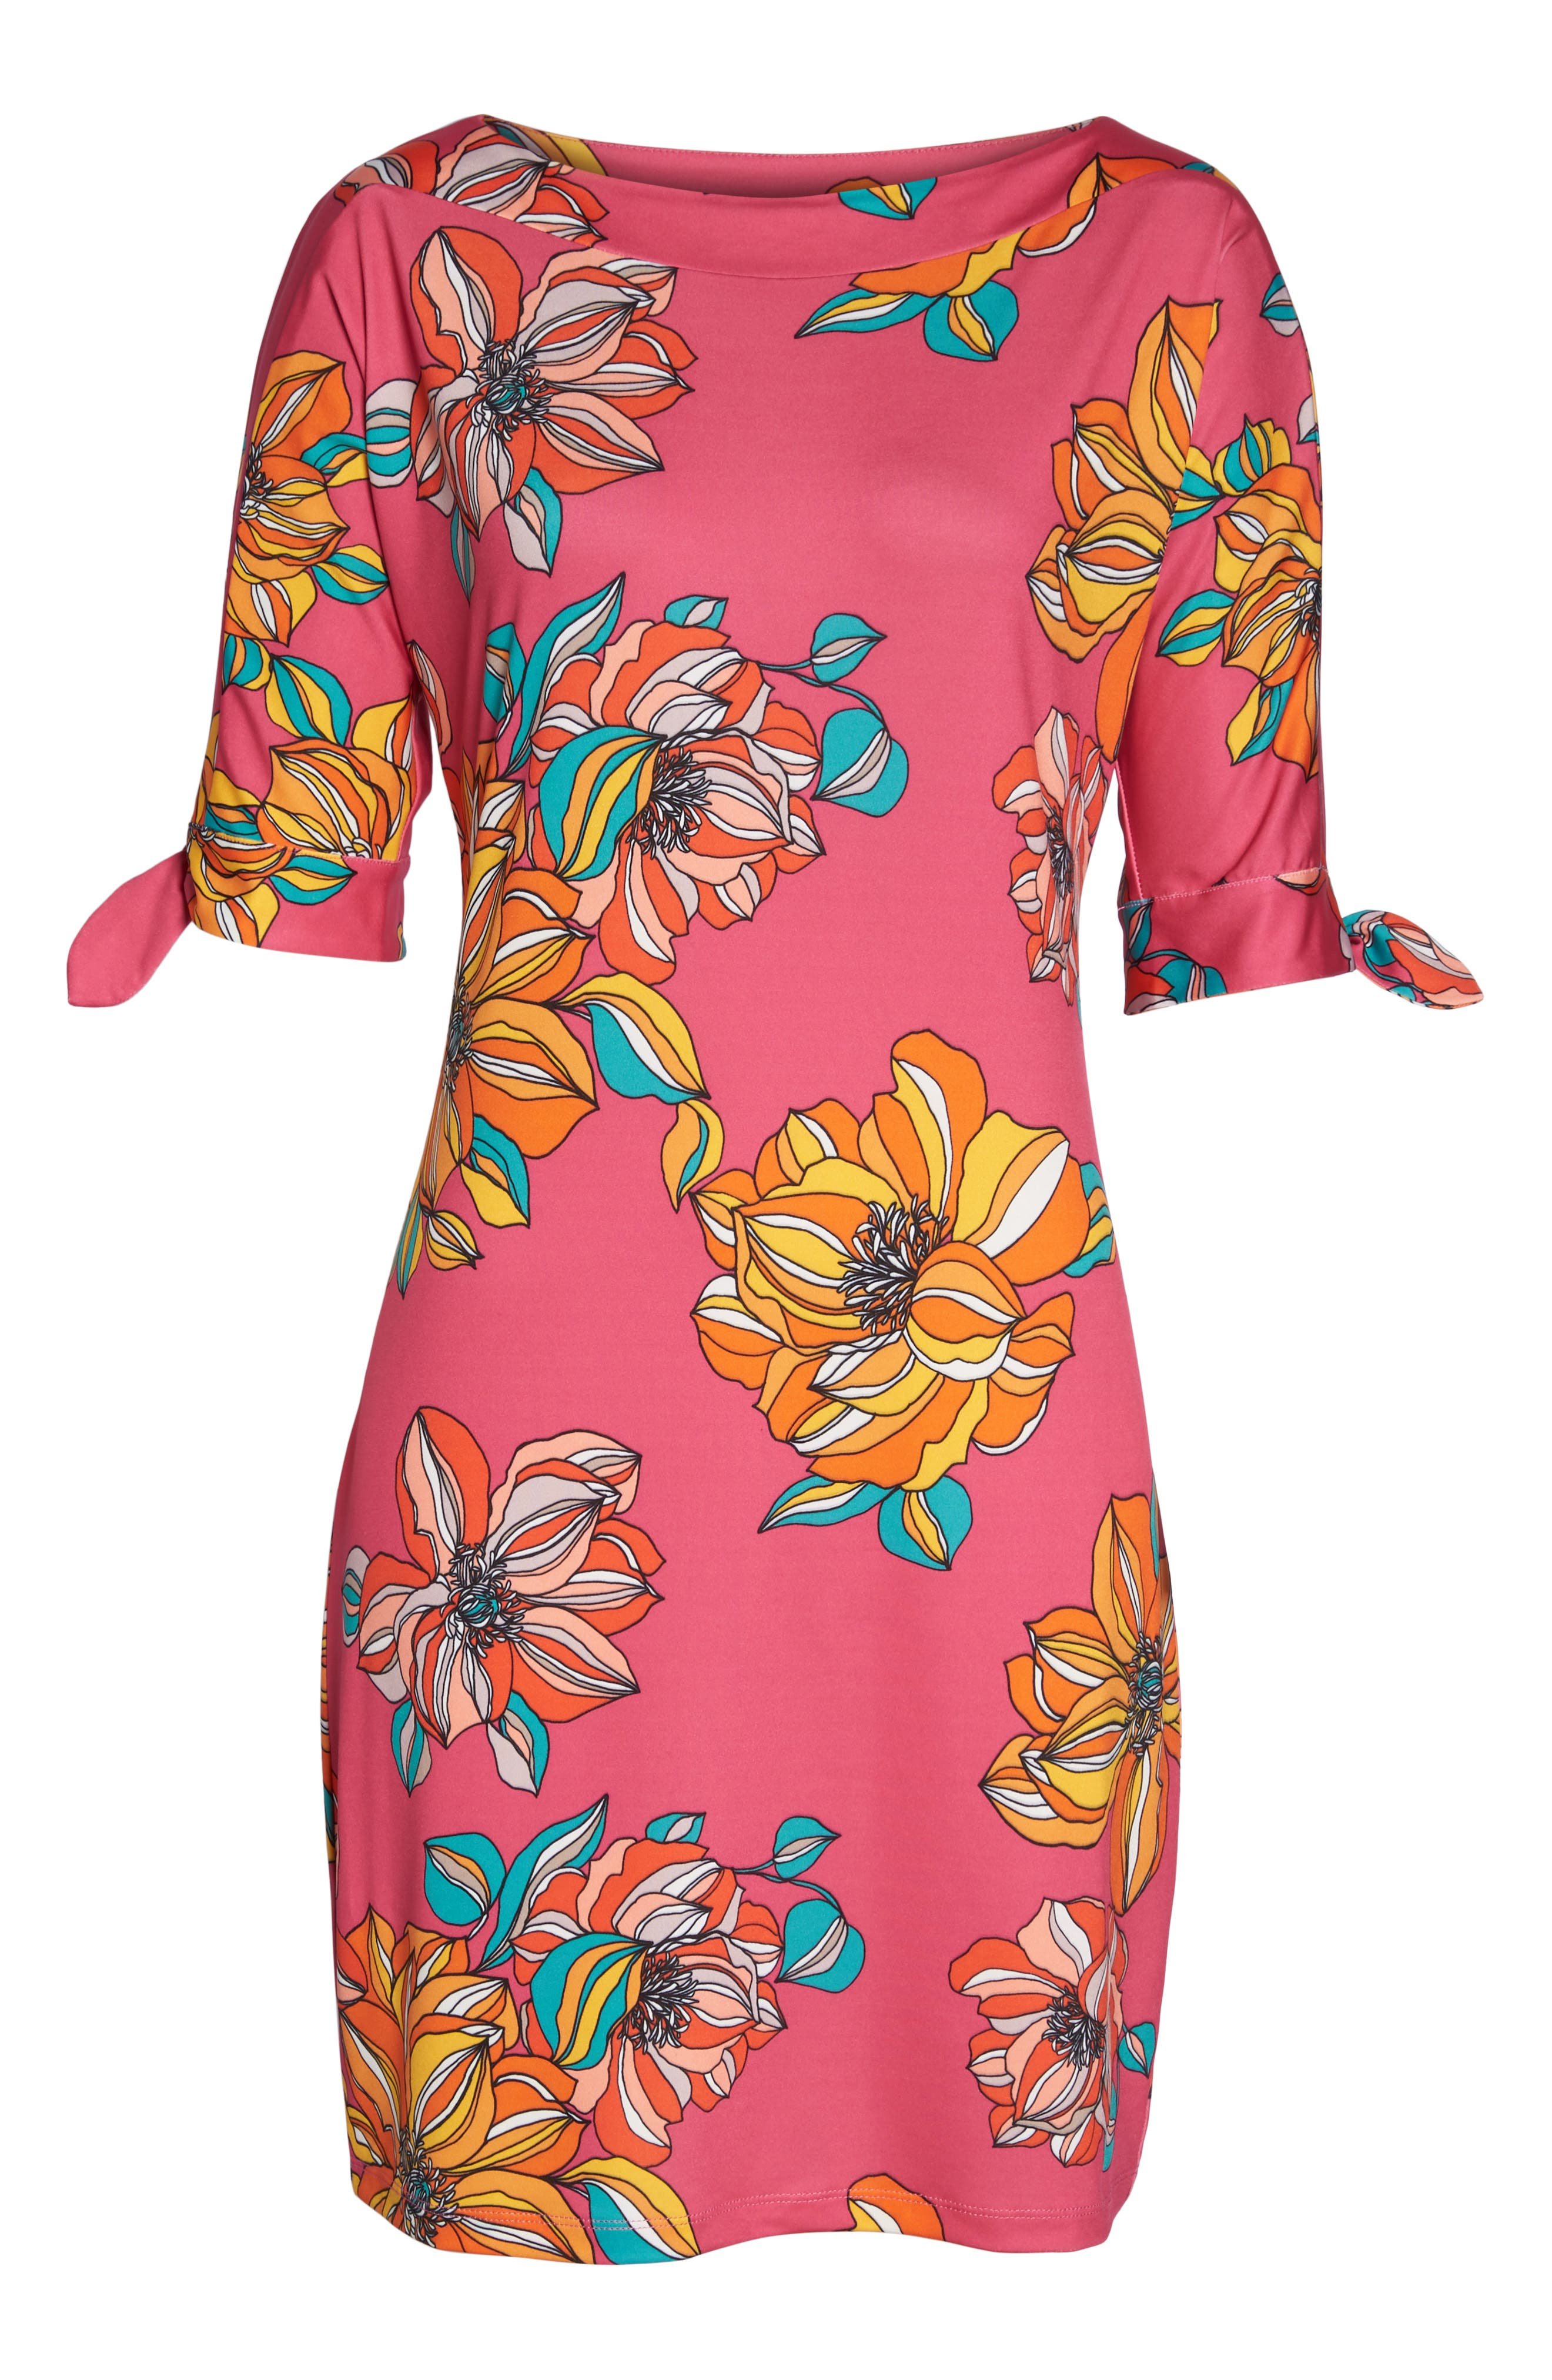 Vinet Floral Jersey Dress,                             Alternate thumbnail 6, color,                             Peony